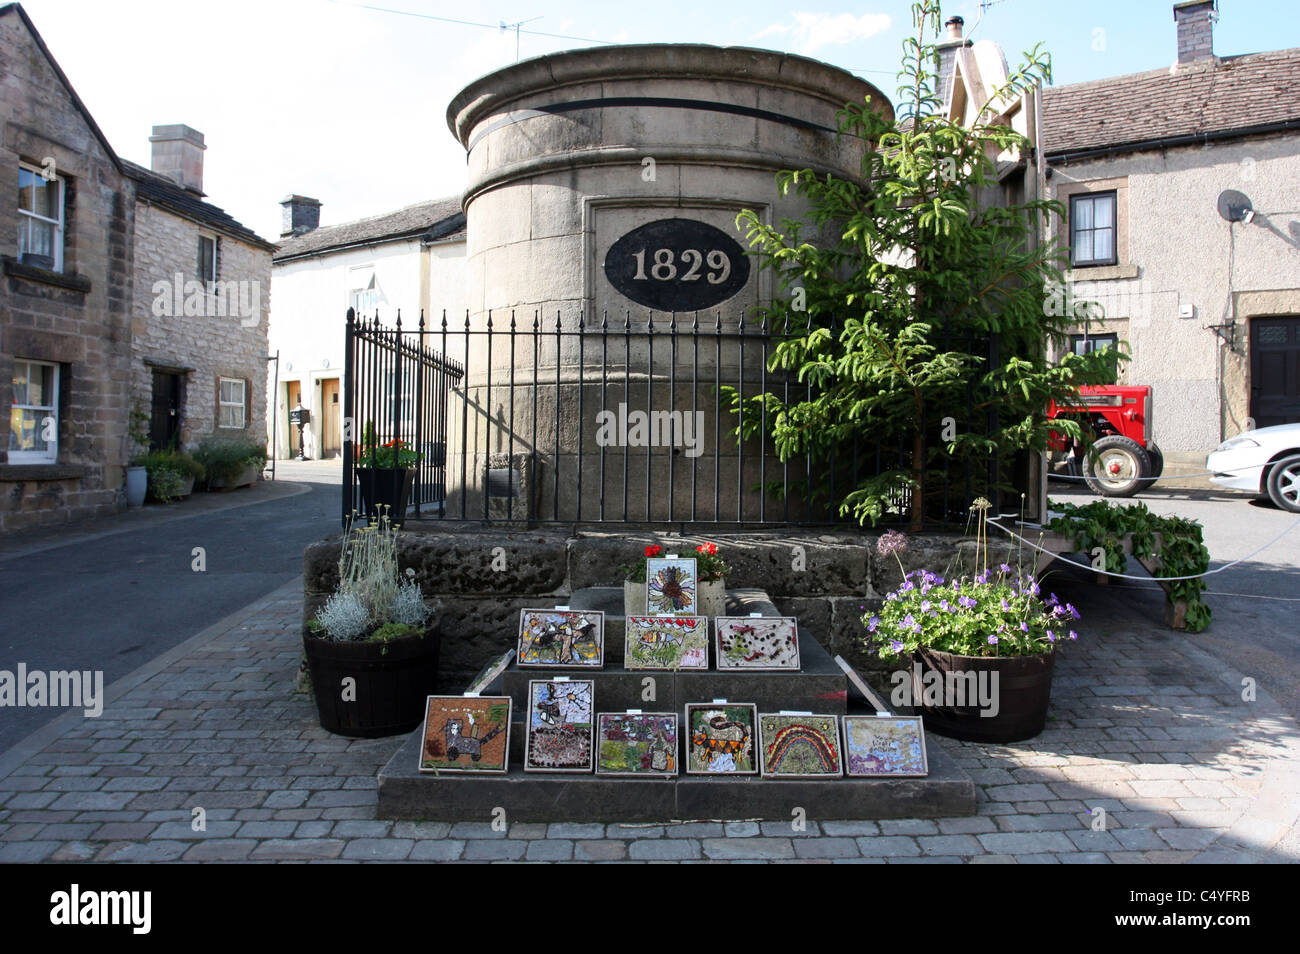 The Fountain Water Tank in Youlgreave with the 2011 Childrens Well Dressings - Stock Image